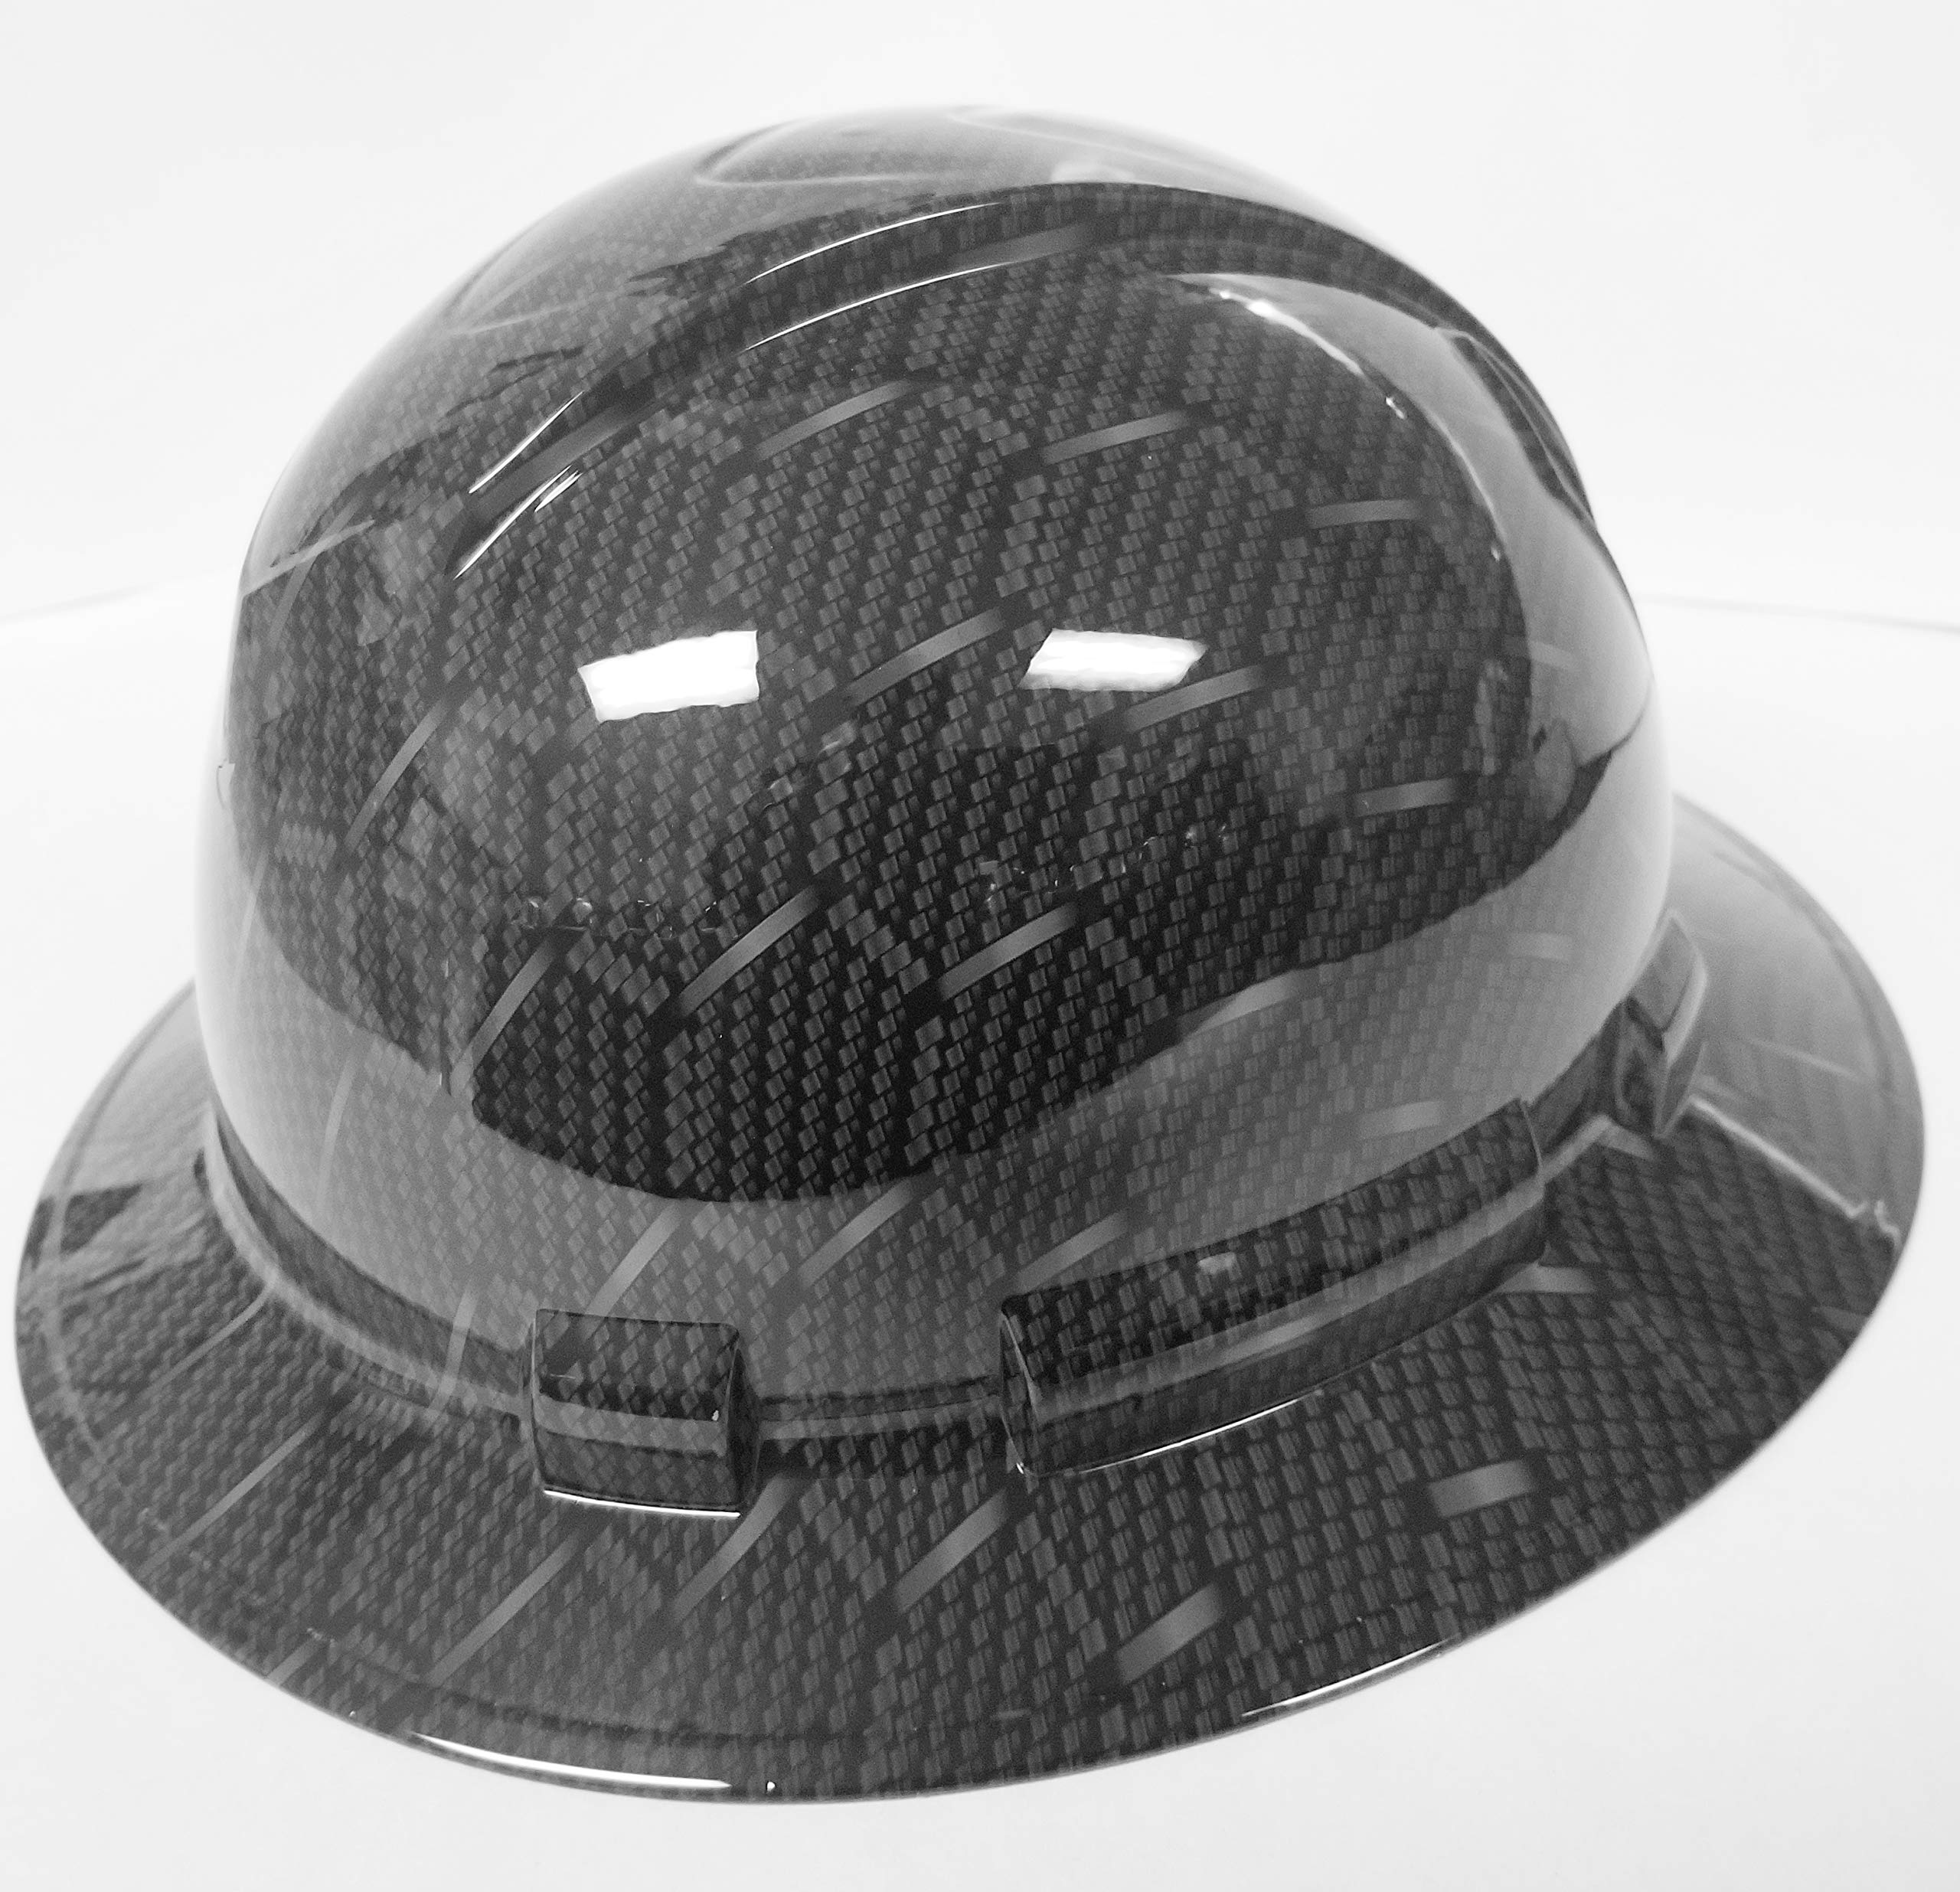 Wet Works Imaging Customized Pyramex Full Brim HEX Weave Carbon Fiber 3D Limited Hard HAT with Ratcheting Suspension Custom LIDS Crazy Sick Construction PPE by Wet Works Imaging (Image #6)